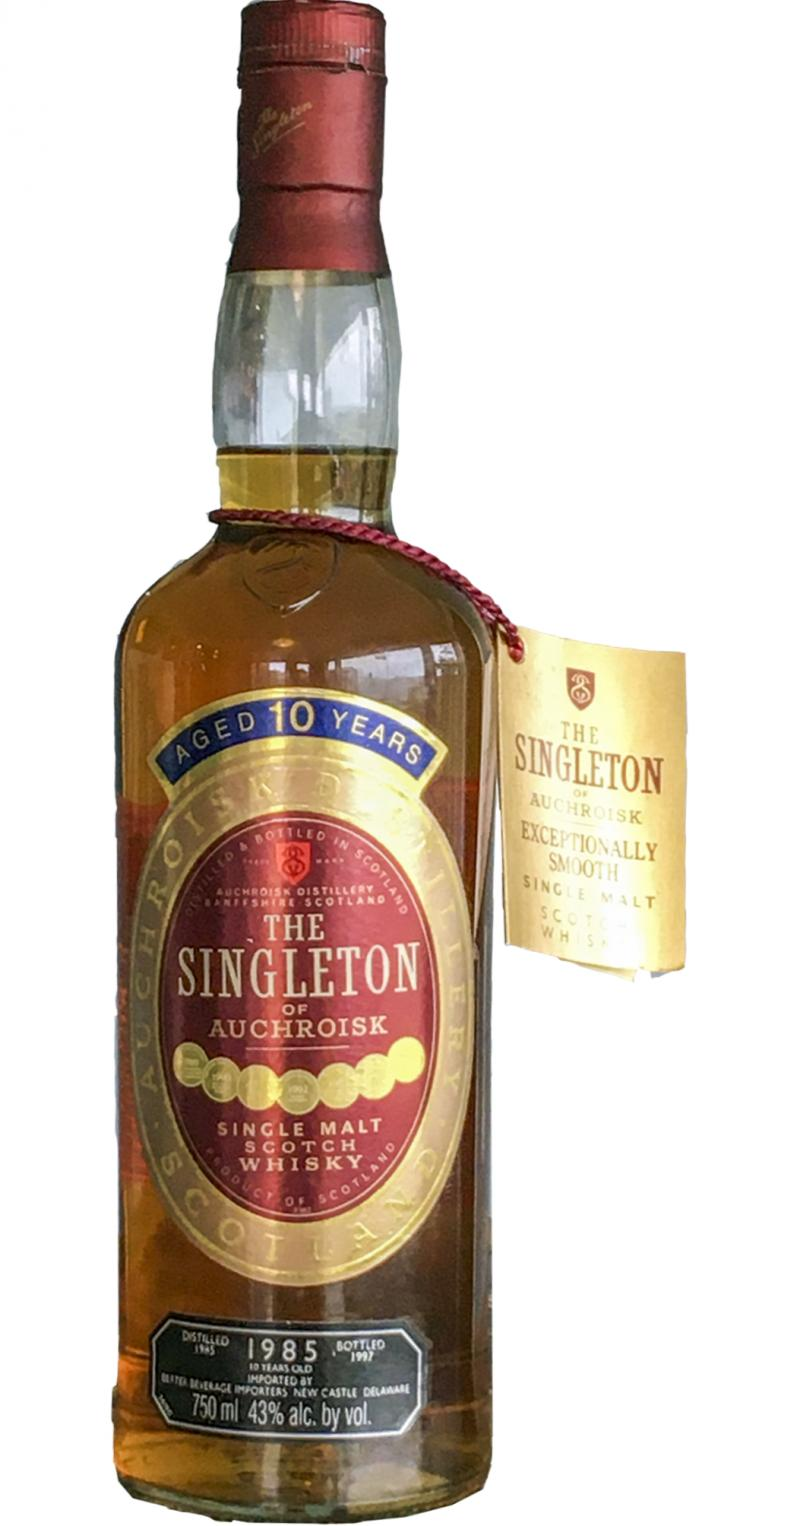 The Singleton of Auchroisk 1985